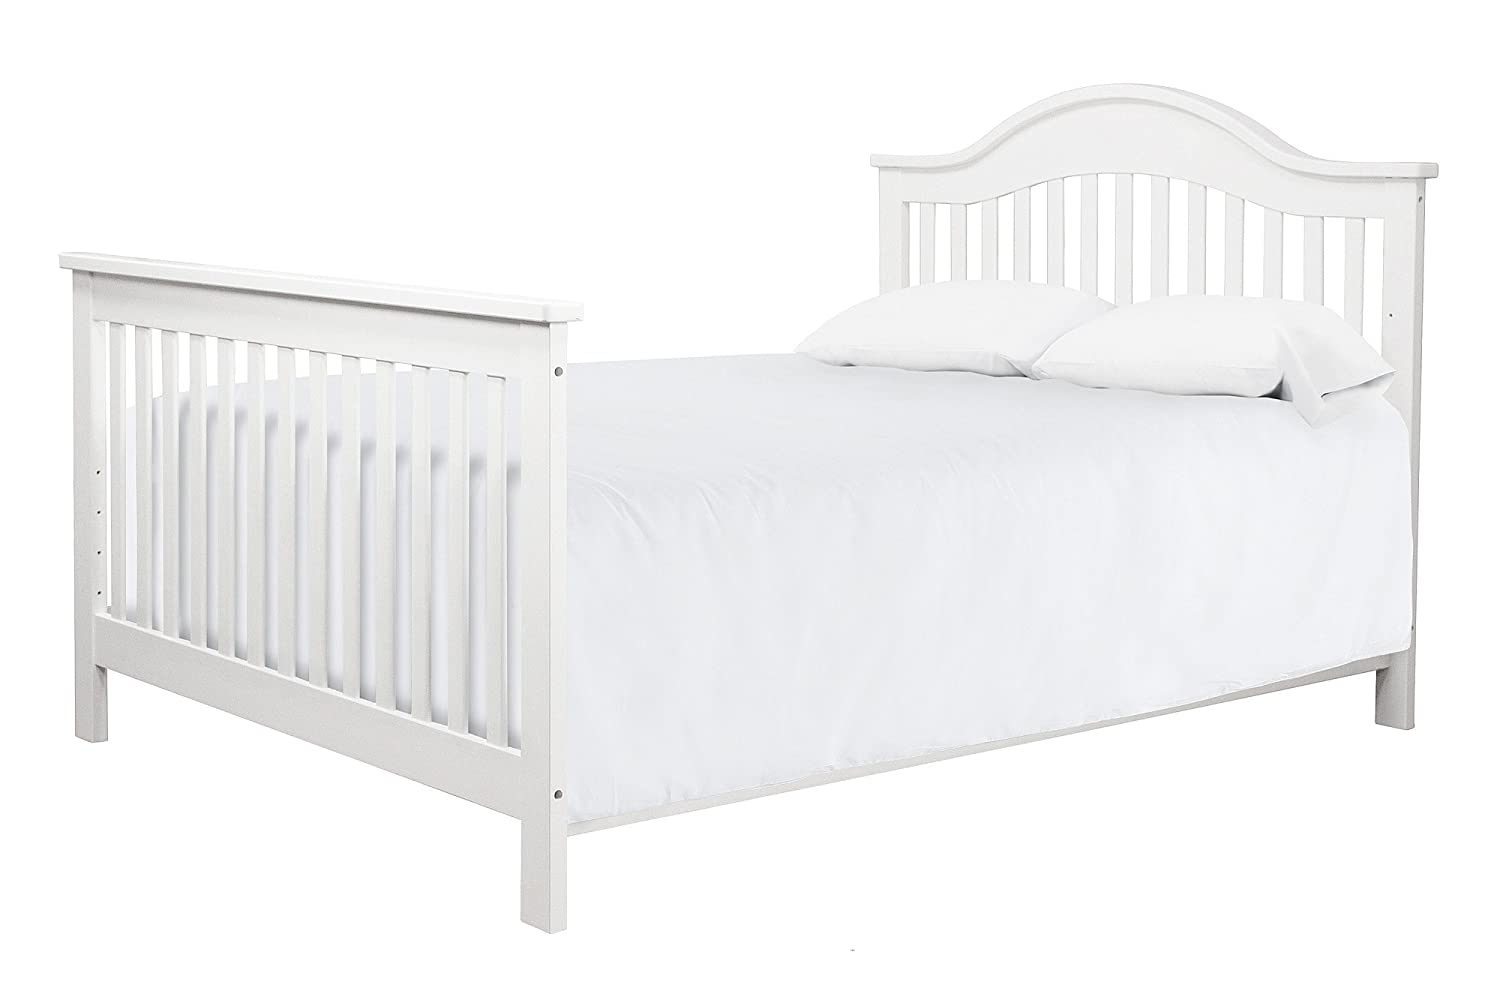 Davinci Jayden 4-in-1 Crib Full Size Conversion Kit Bed Rails - White DaVinci Nursery Furniture M5789